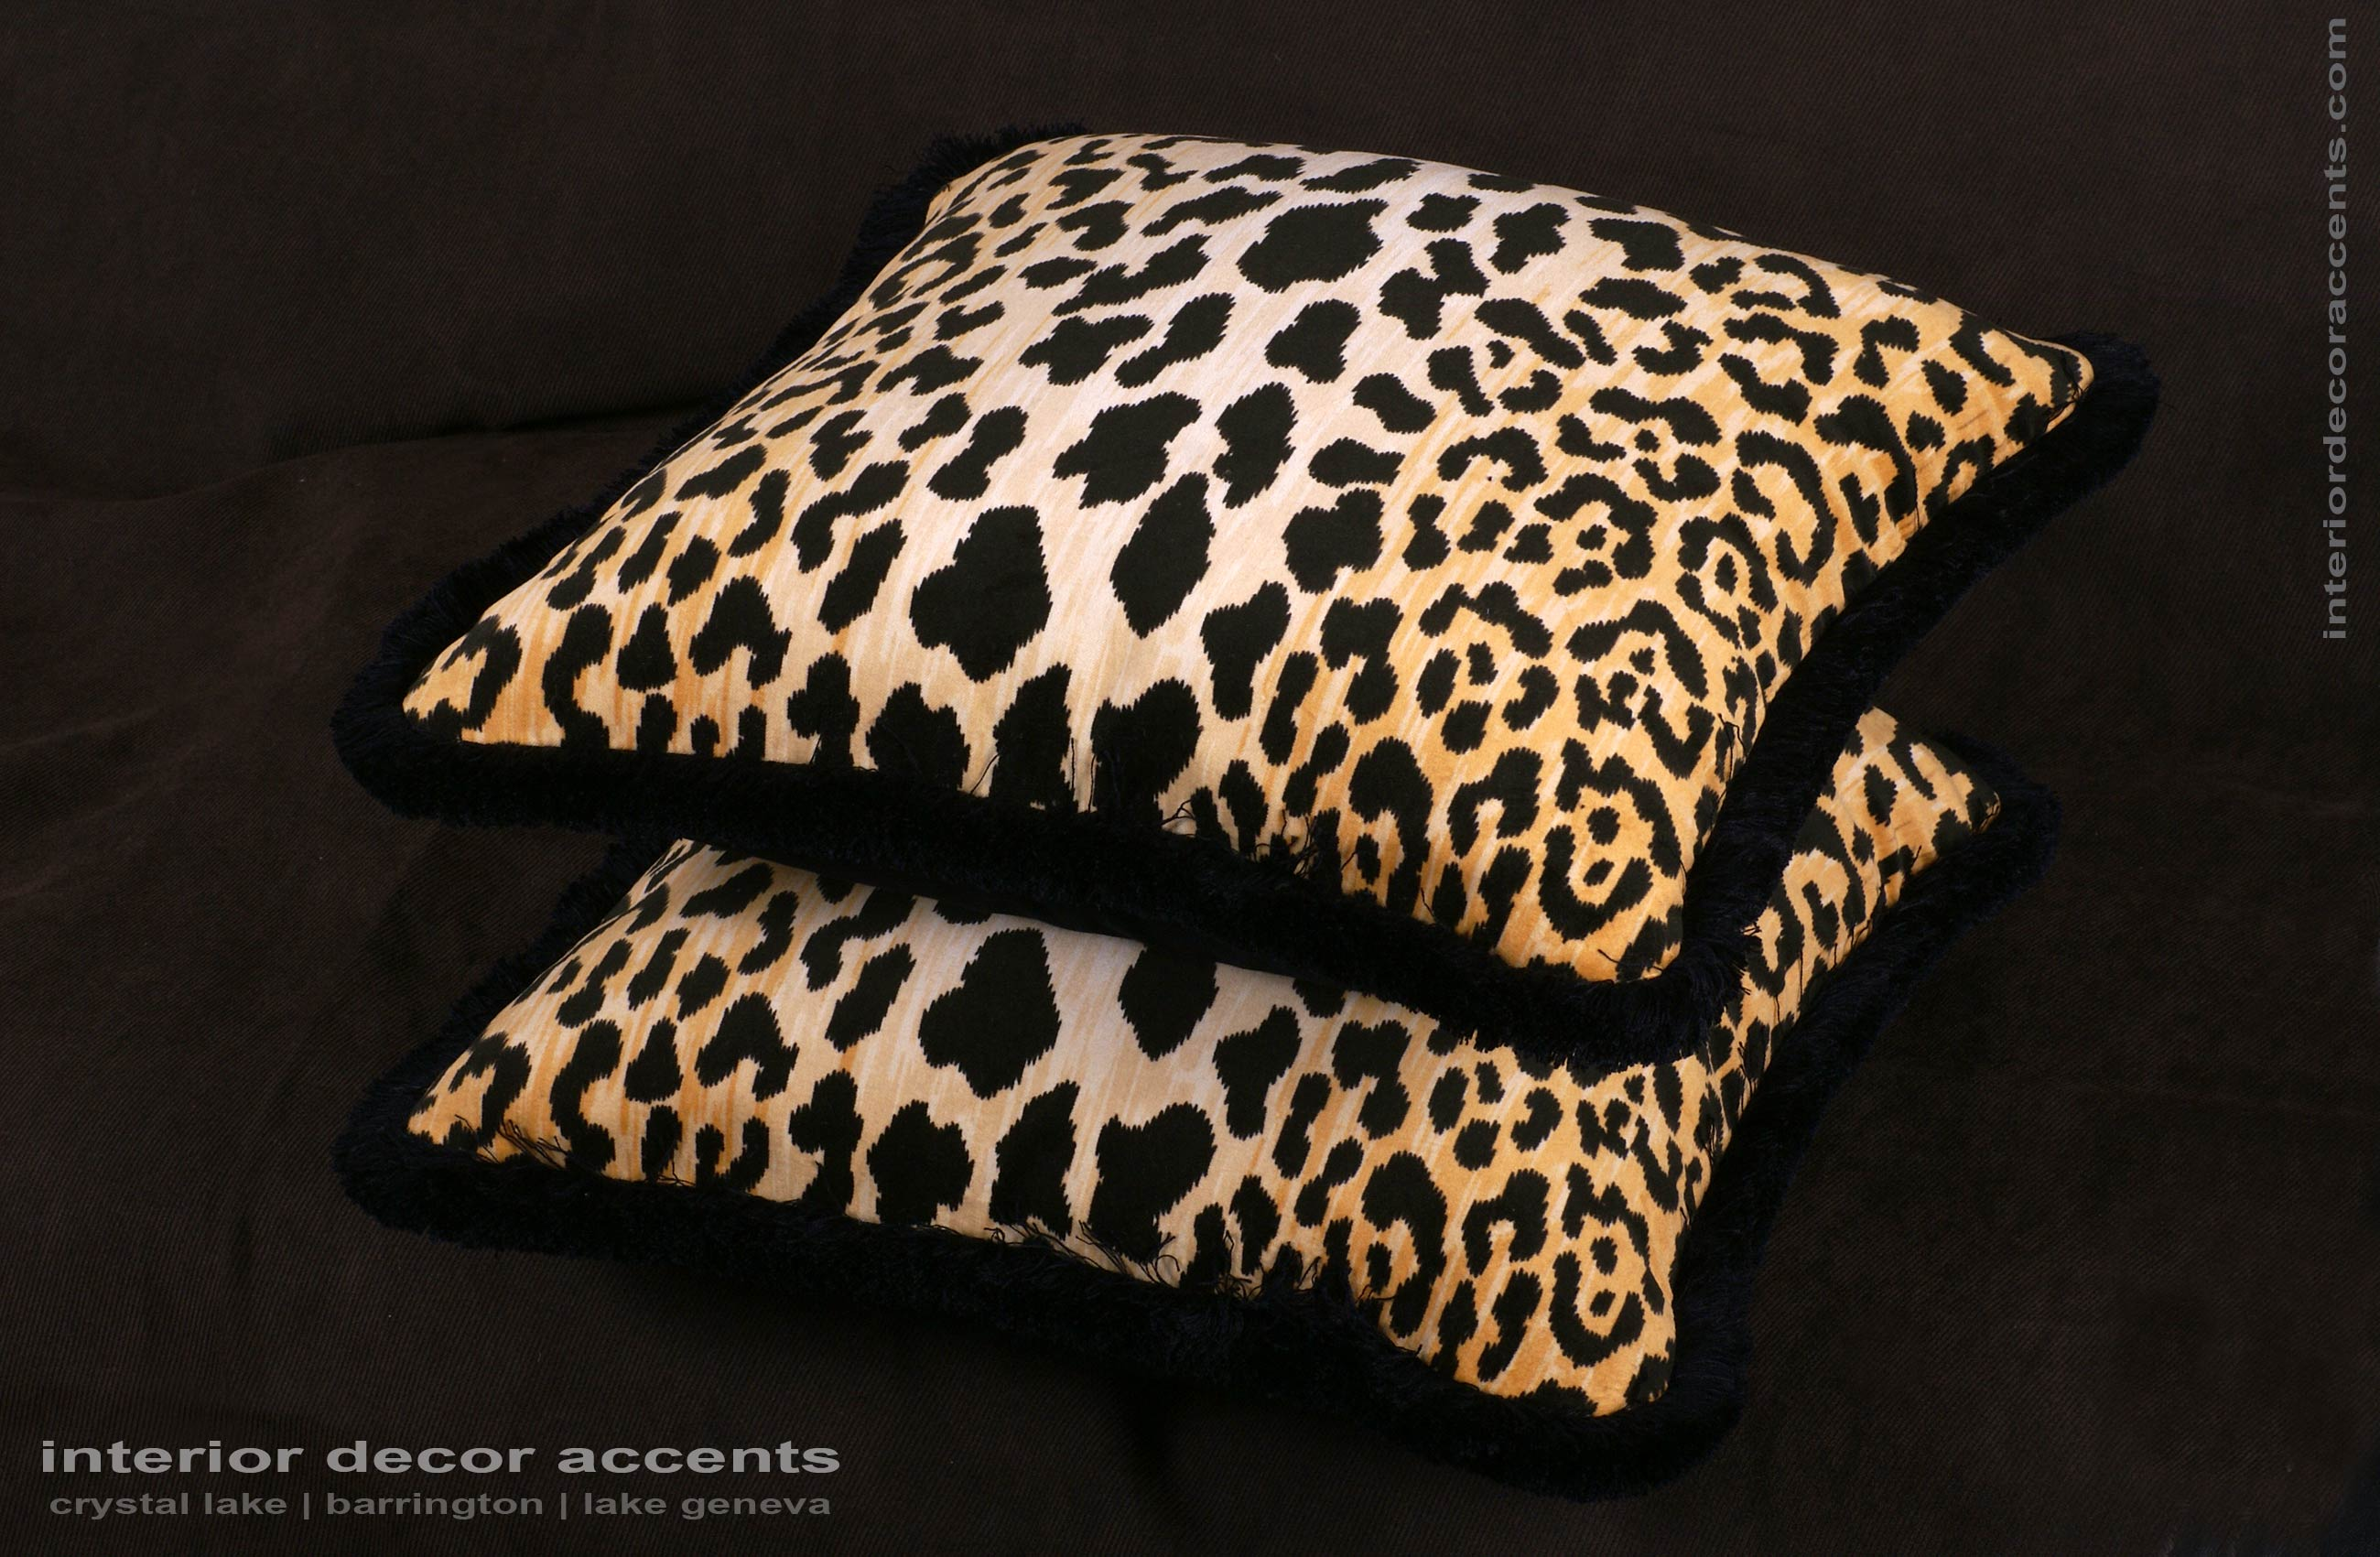 Stroheim Leopard Print Velvet - 19 in Decorative Accent Pillows